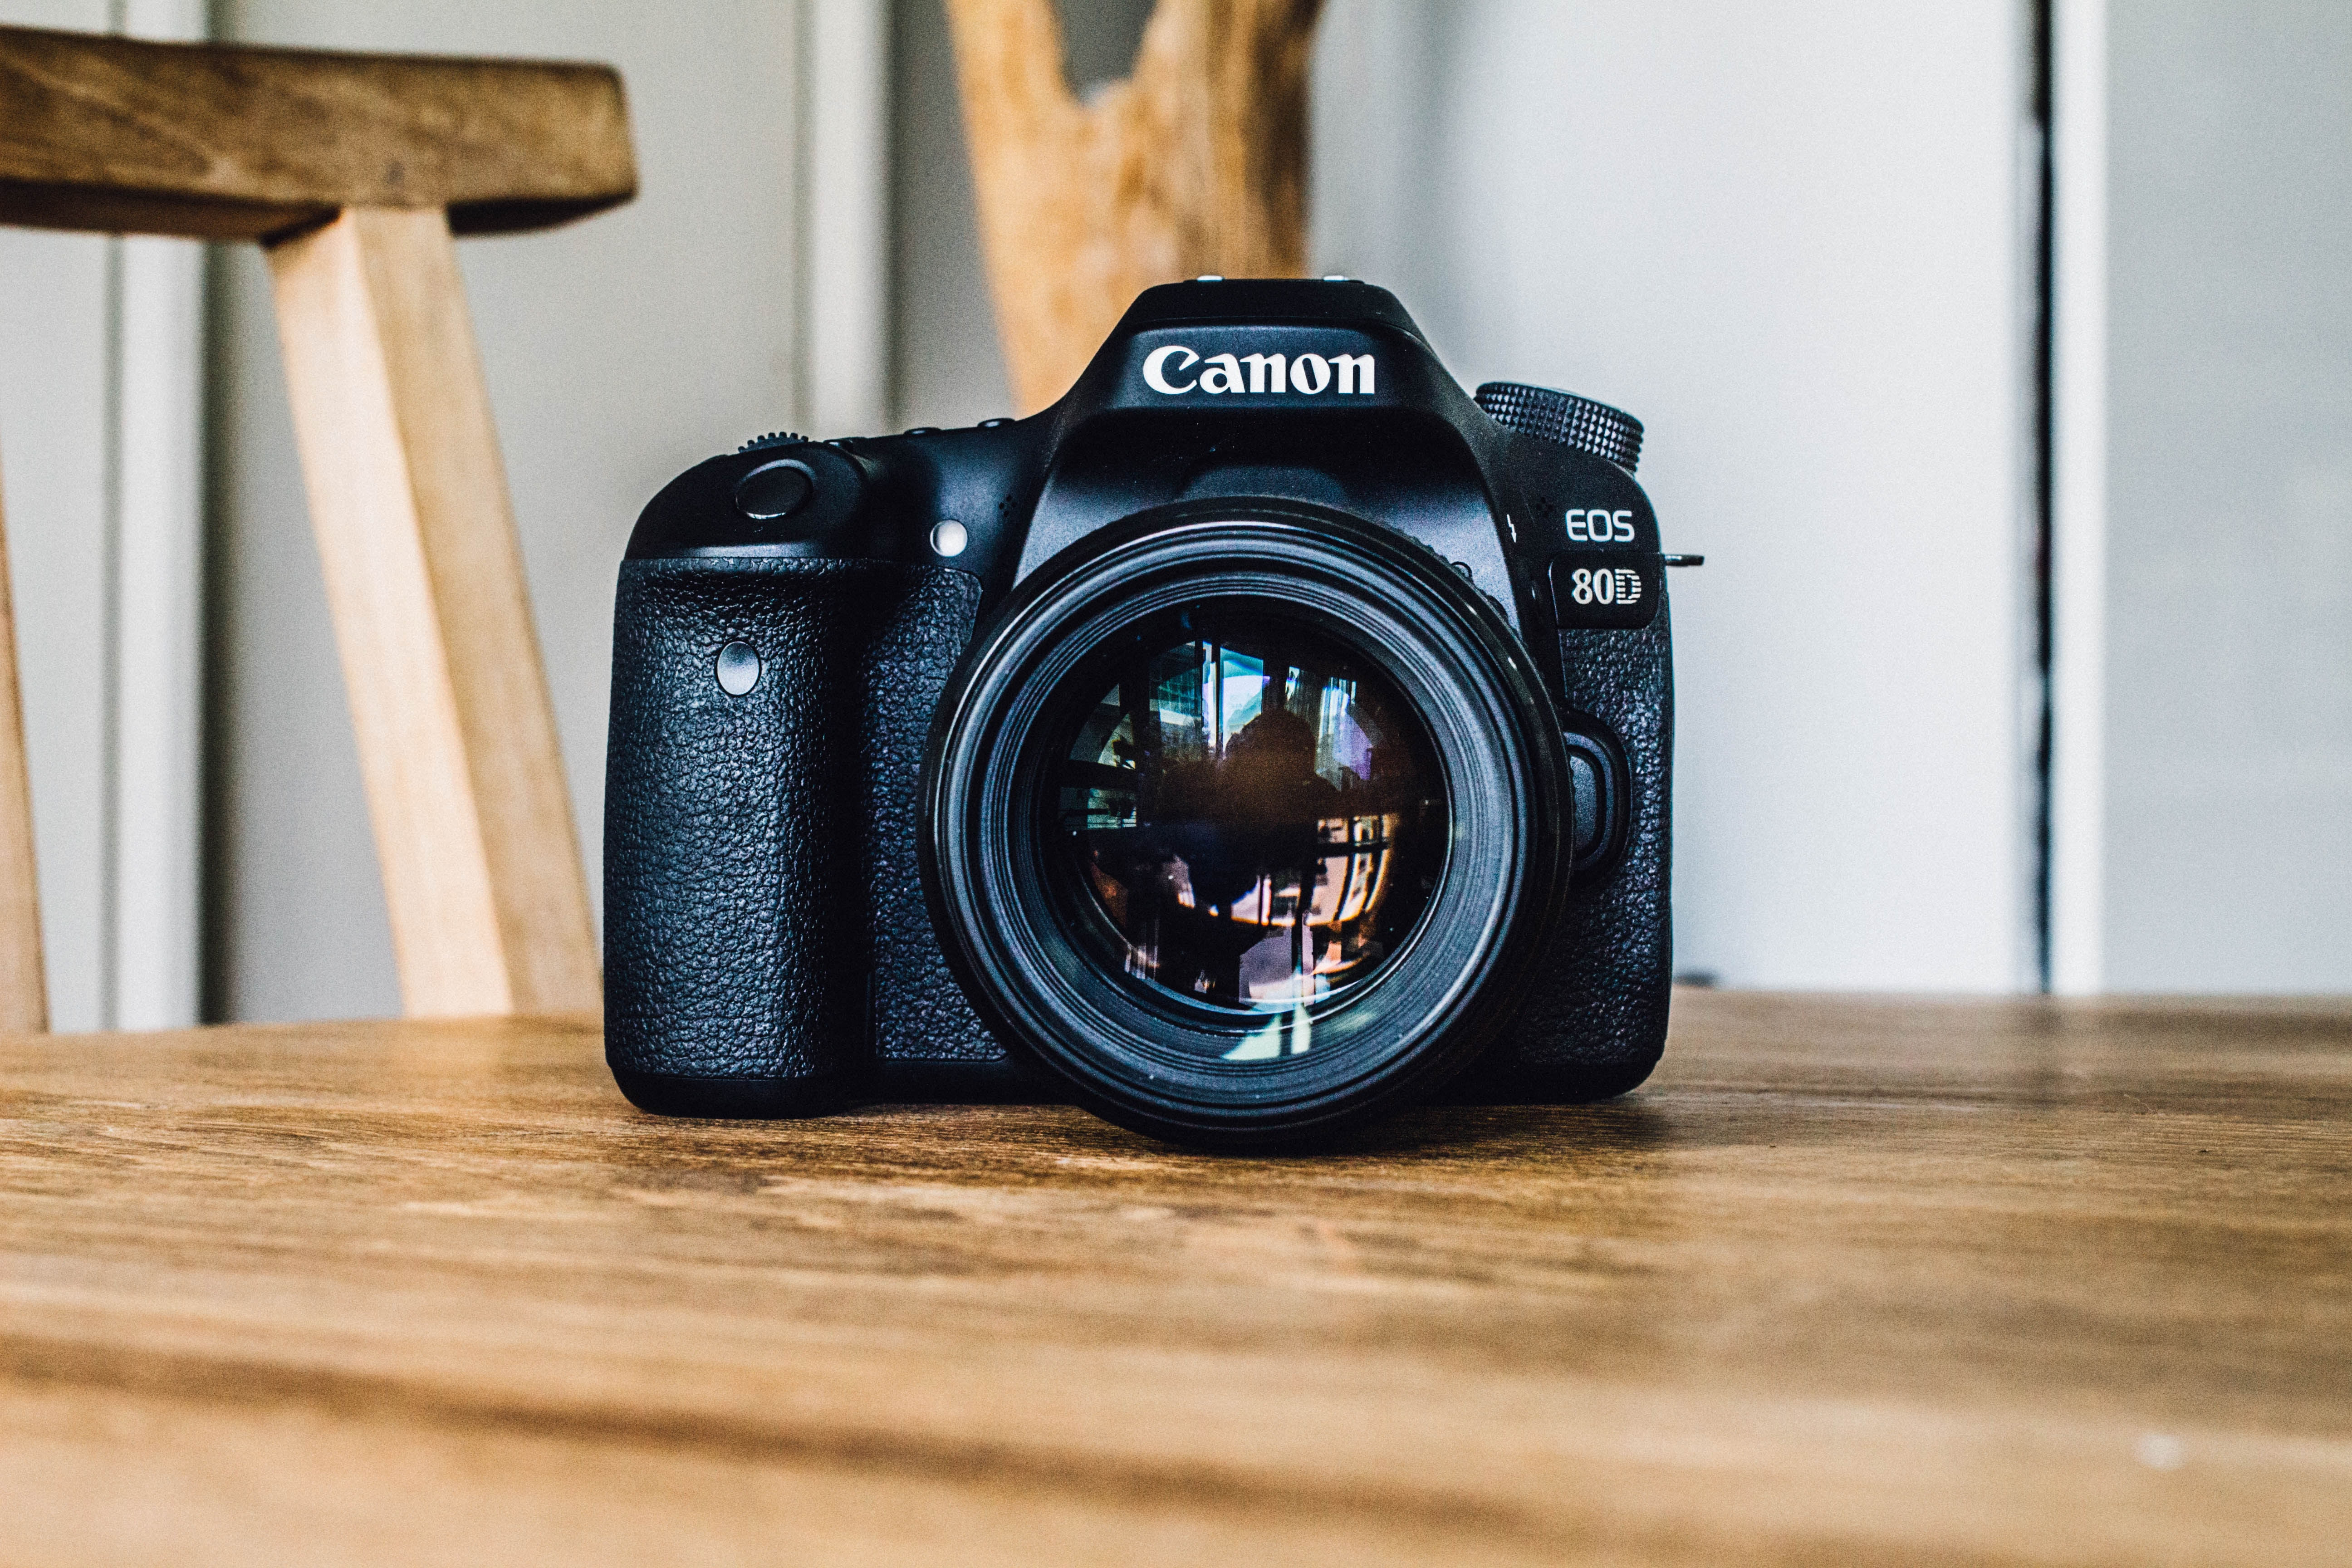 Canon EOS 80D camera on a wooden table by a wooden chair